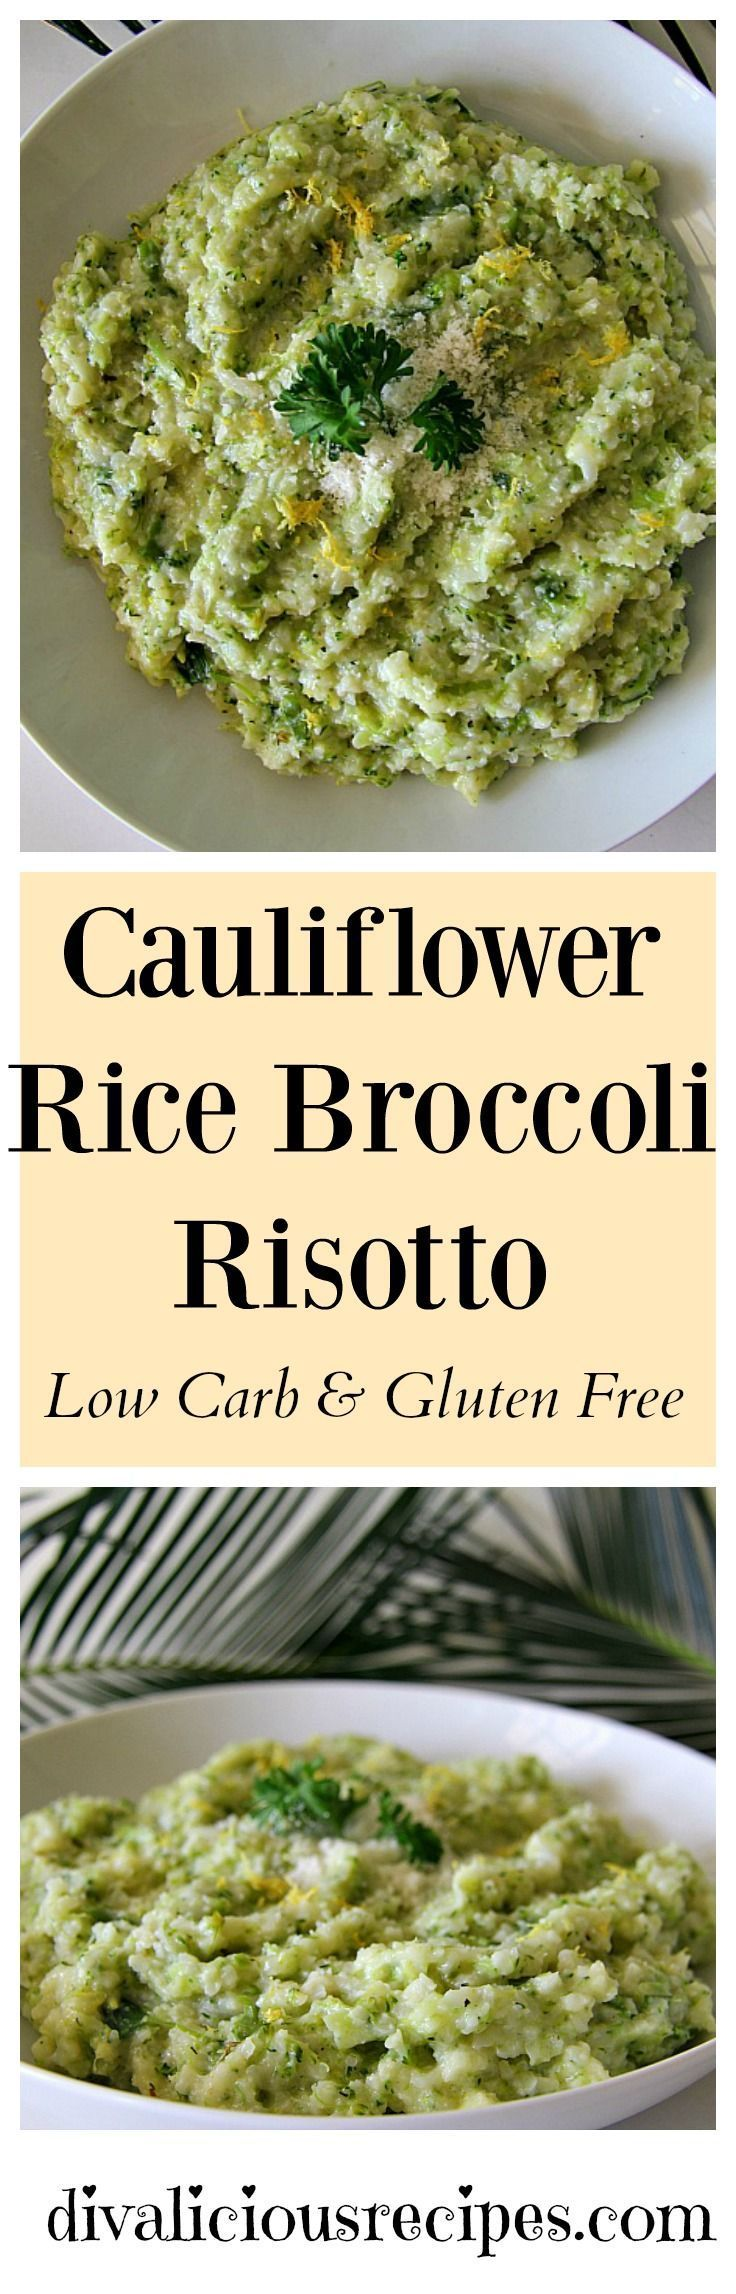 This cauliflower rice risotto is also made with broccoli rice. It's a tasty grain free dish that is quick to make too. Low carb and gluten free.